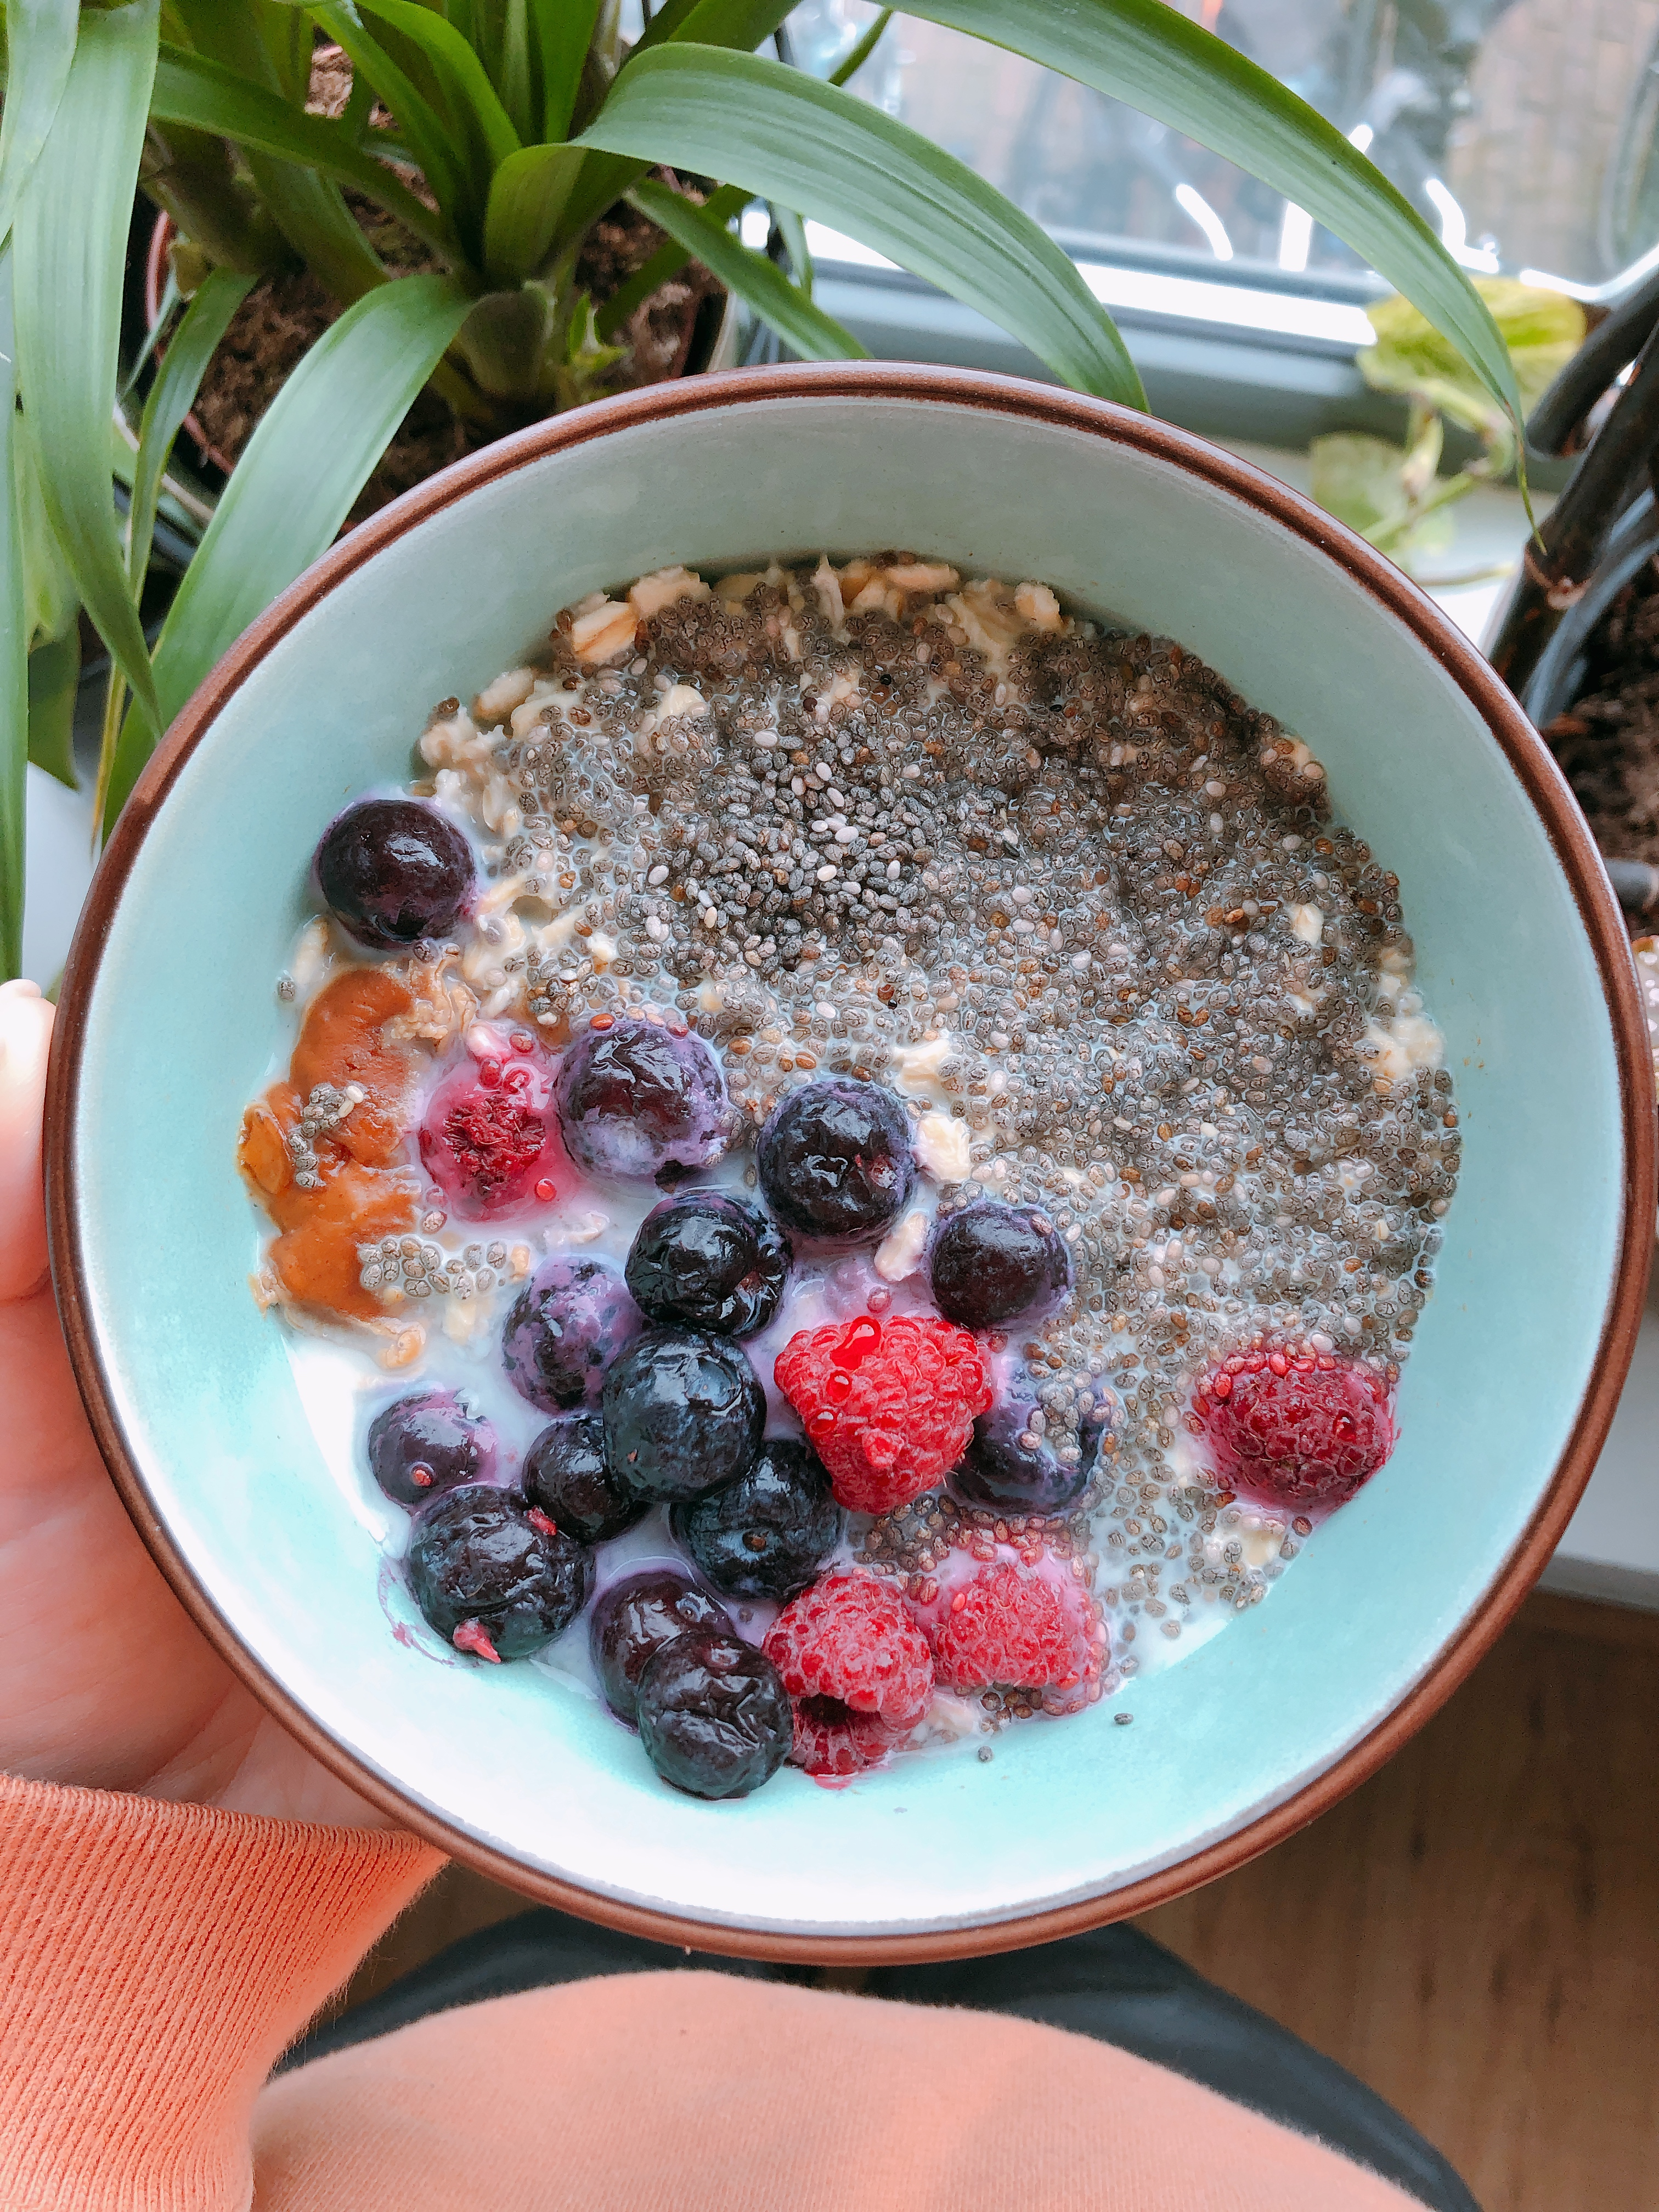 Quarantine Breakfast: Overnight Oats with Berries, Chia Seeds, and Peanut Butter